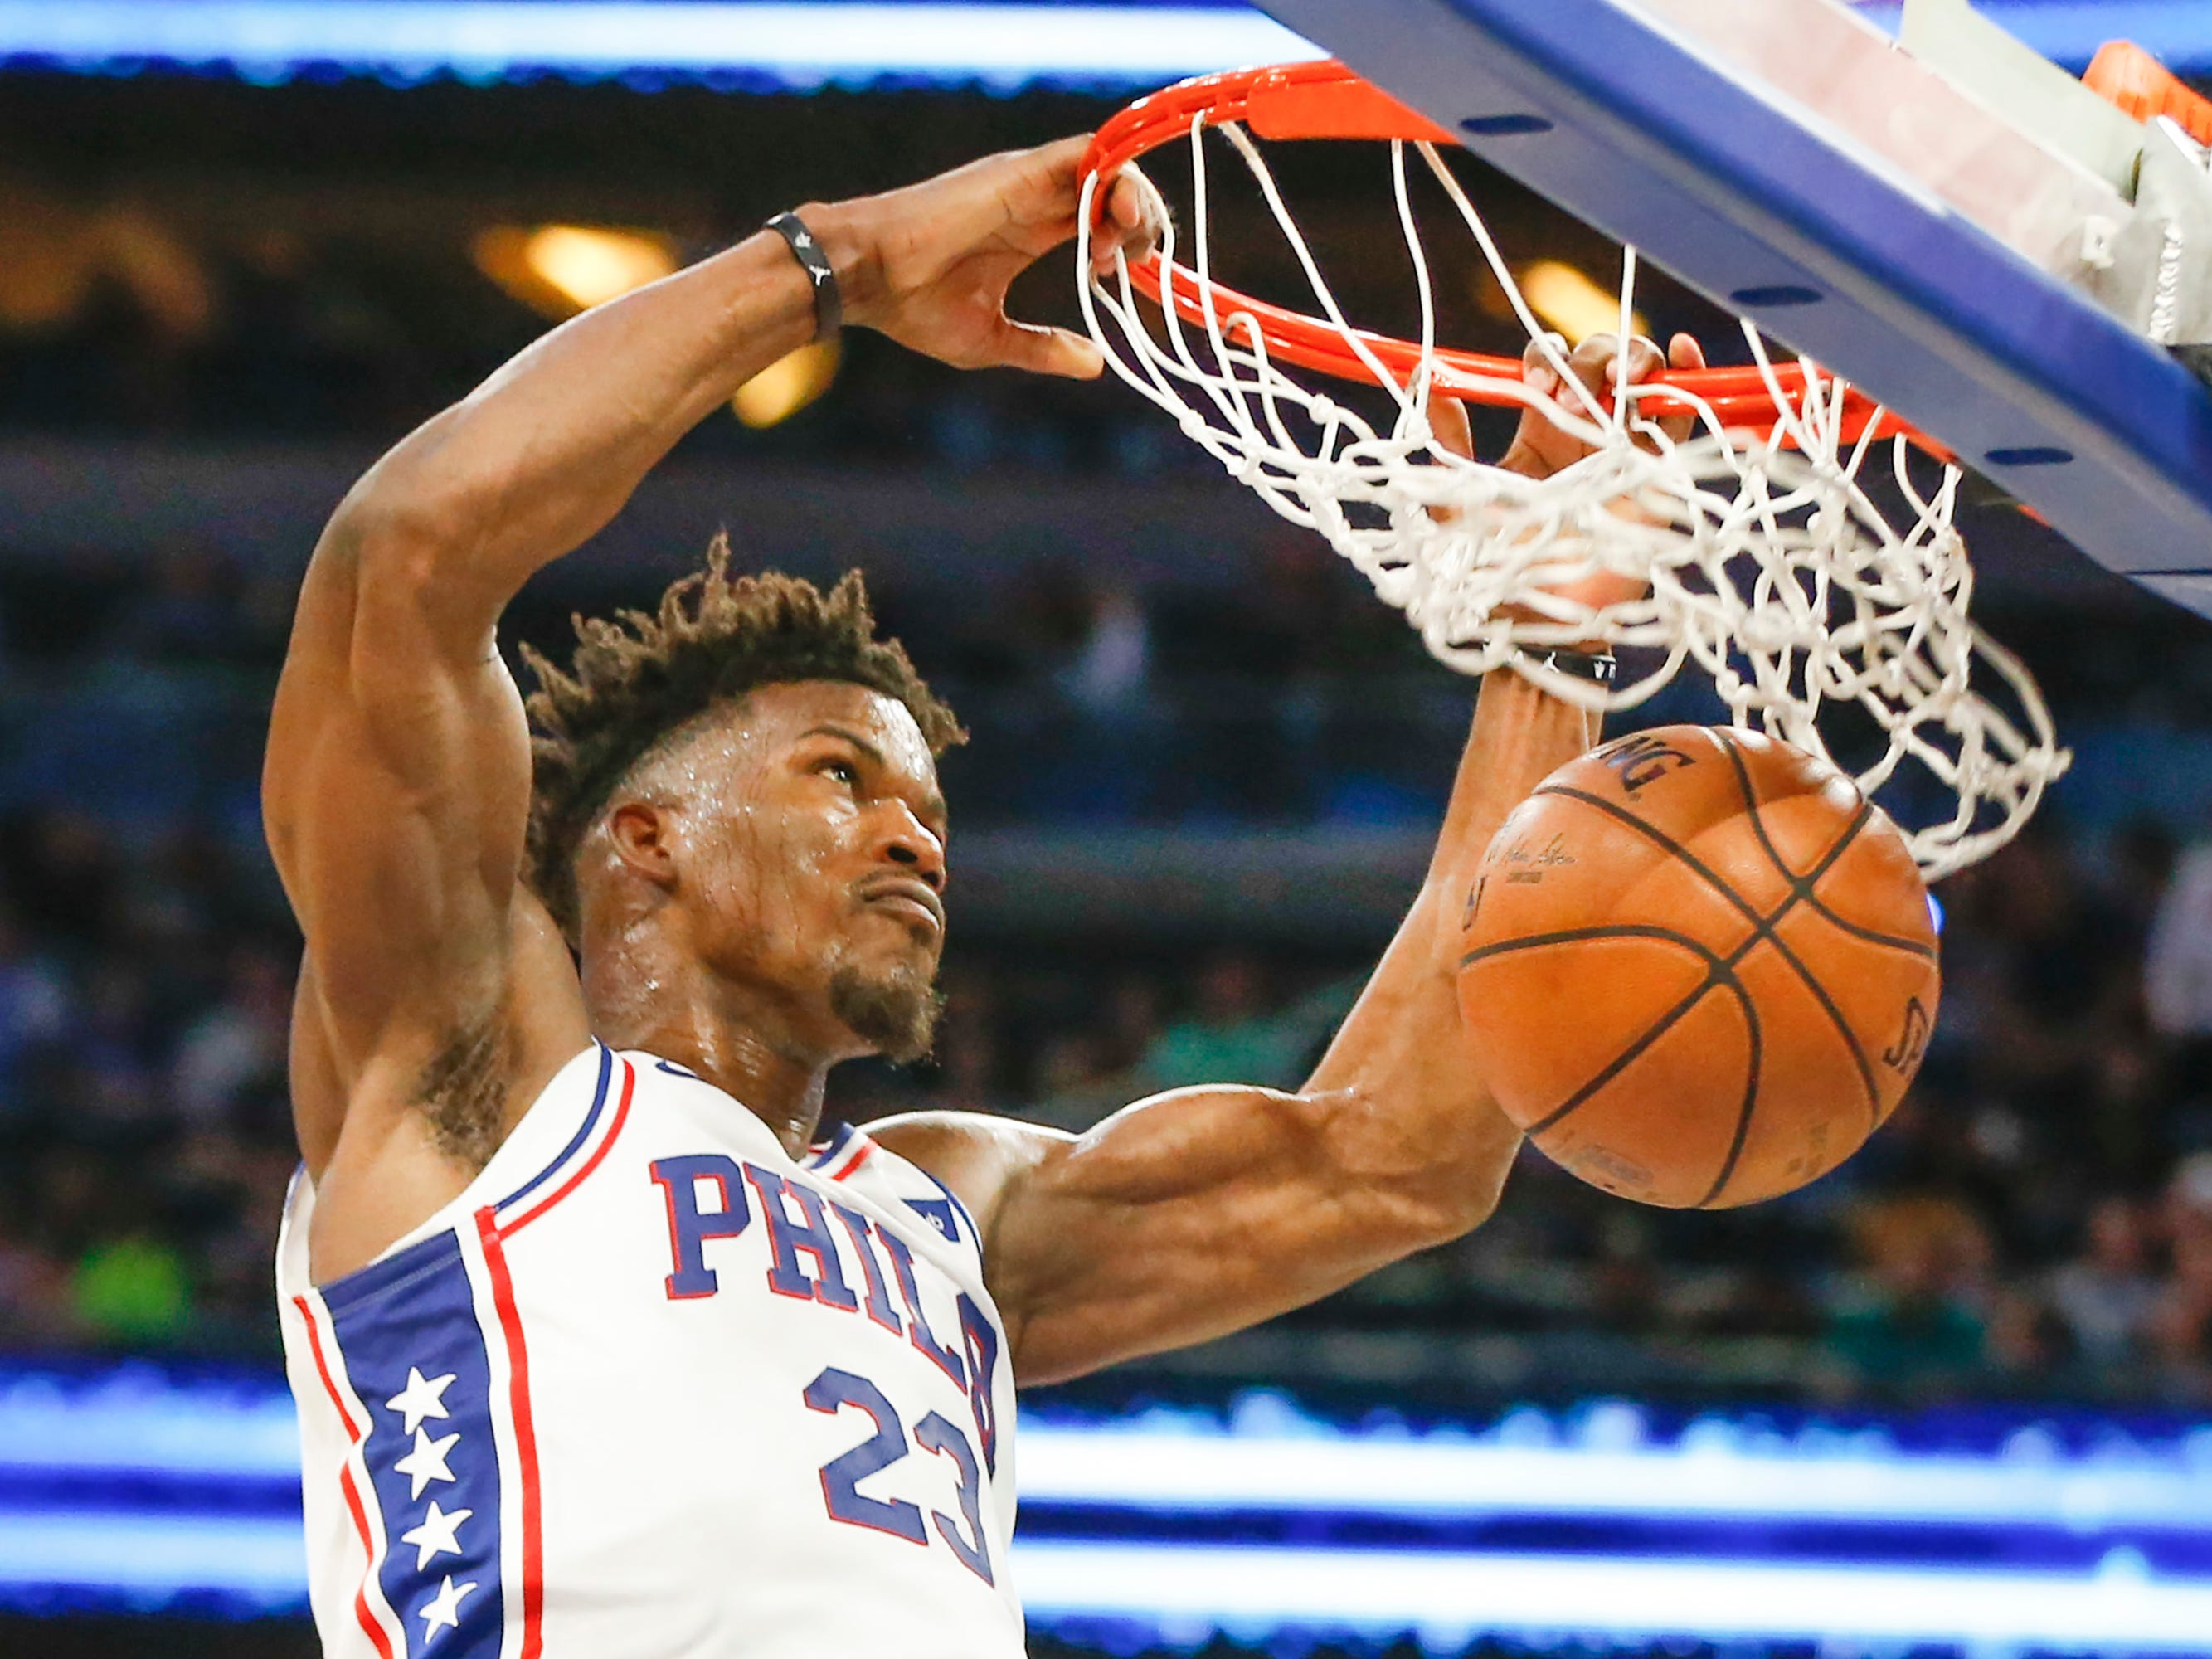 Nov. 14: 76ers guard Jimmy Butler throws down a two-handed flush during the second half against the Magic in Orlando.